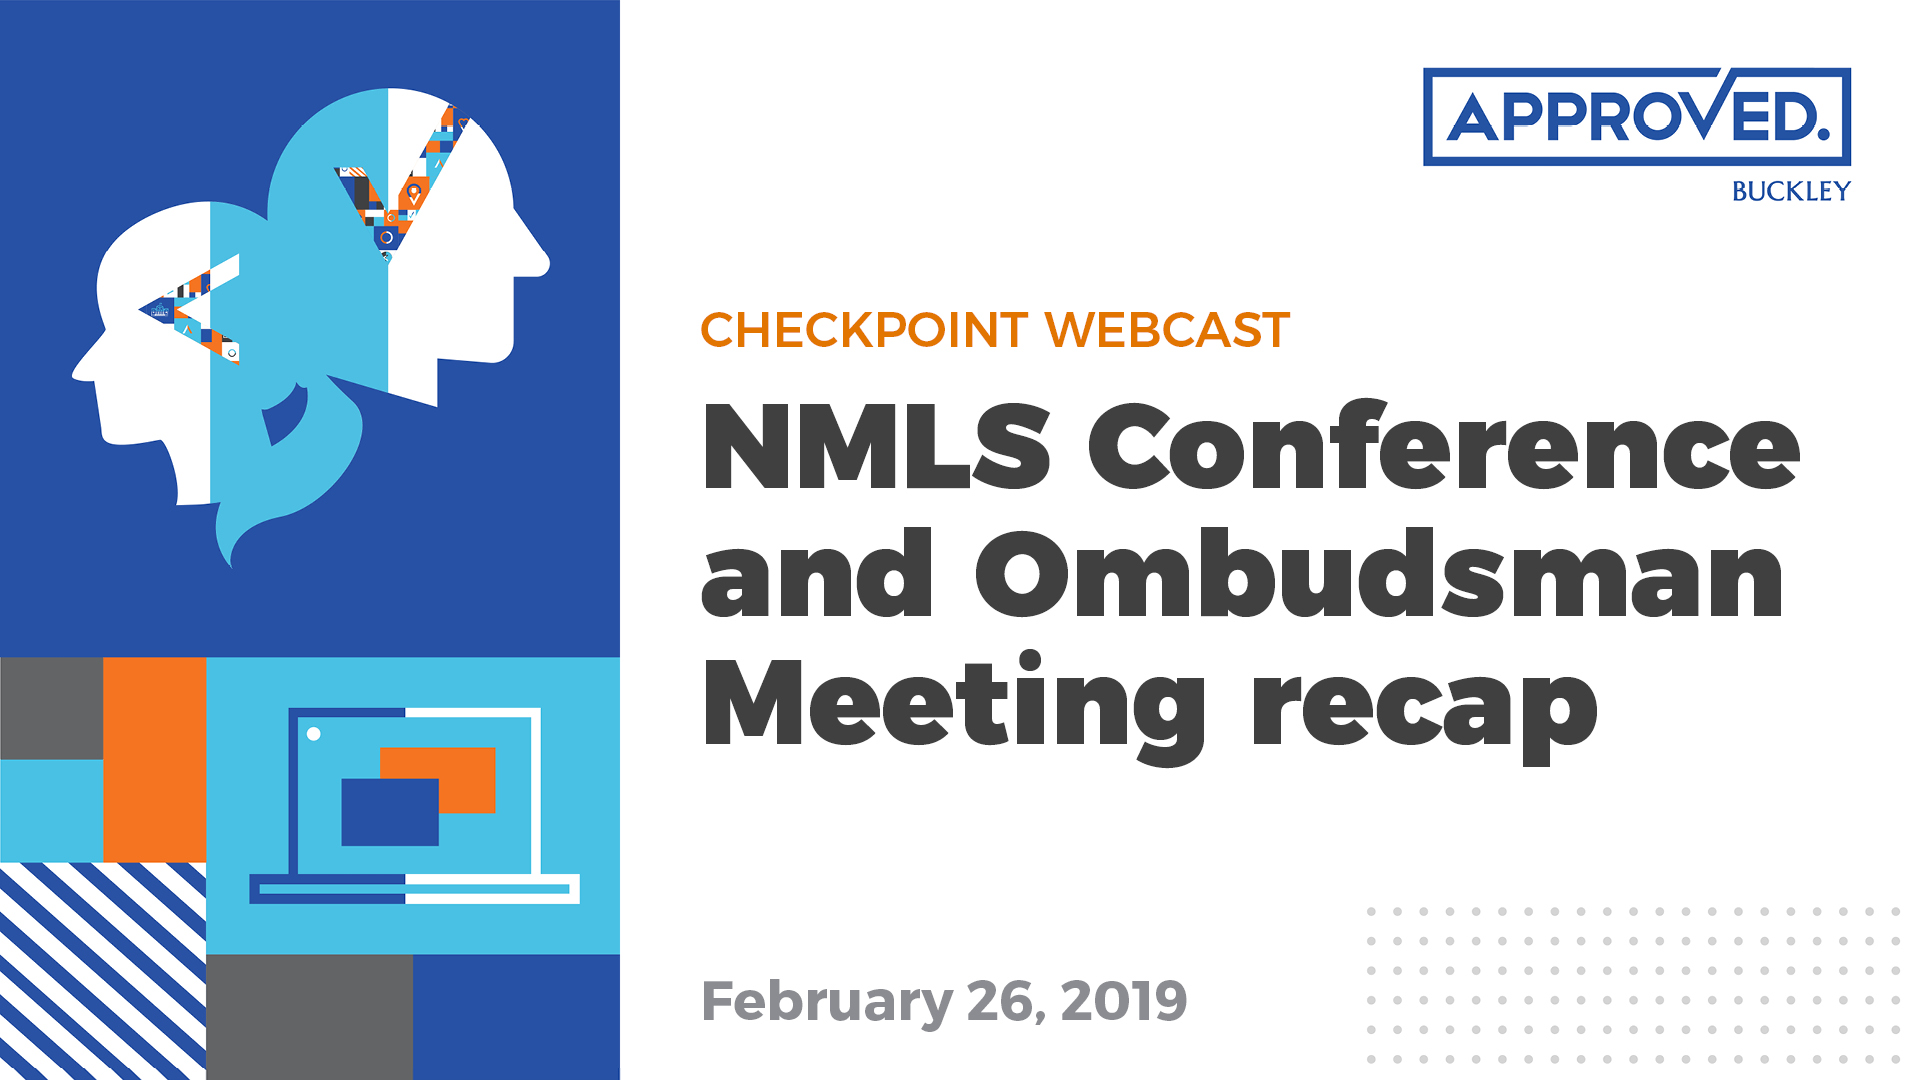 NMLS 2019 Annual Conference recap | APPROVED Checkpoint Webcast